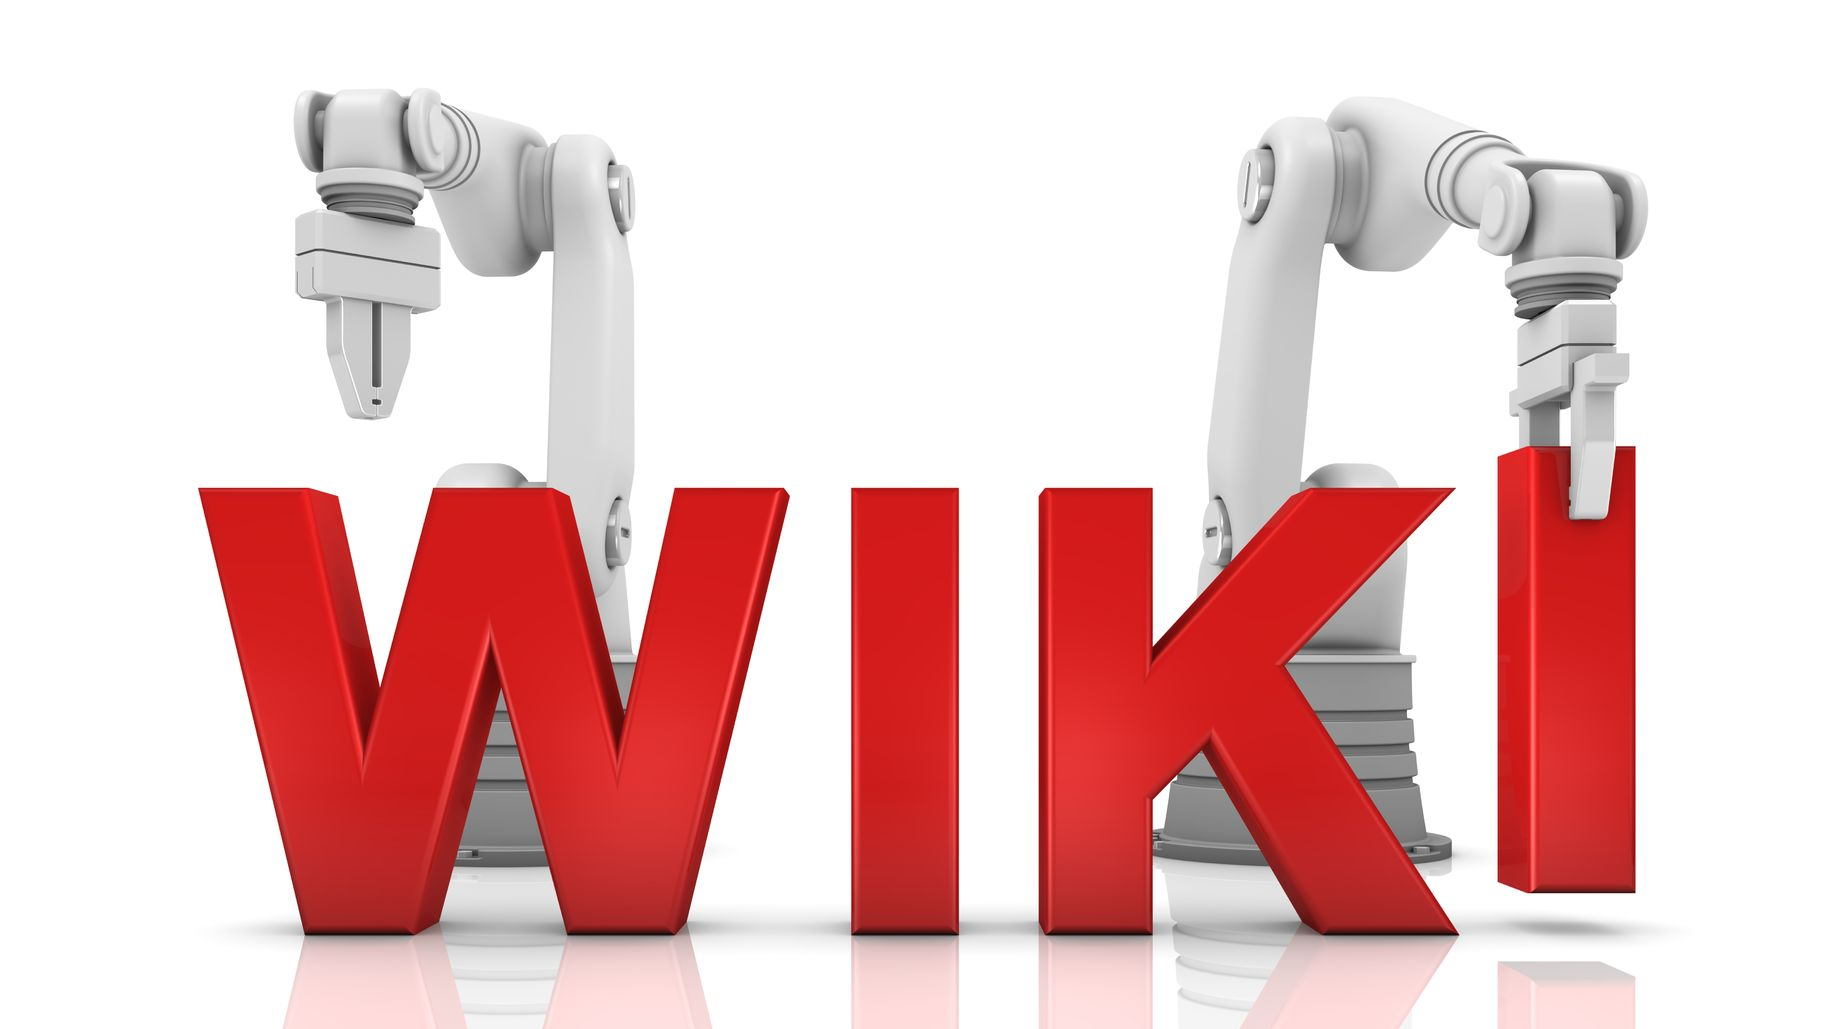 Create 10,000 backlinks for your URL and keywords from 10,000 Wiki articles